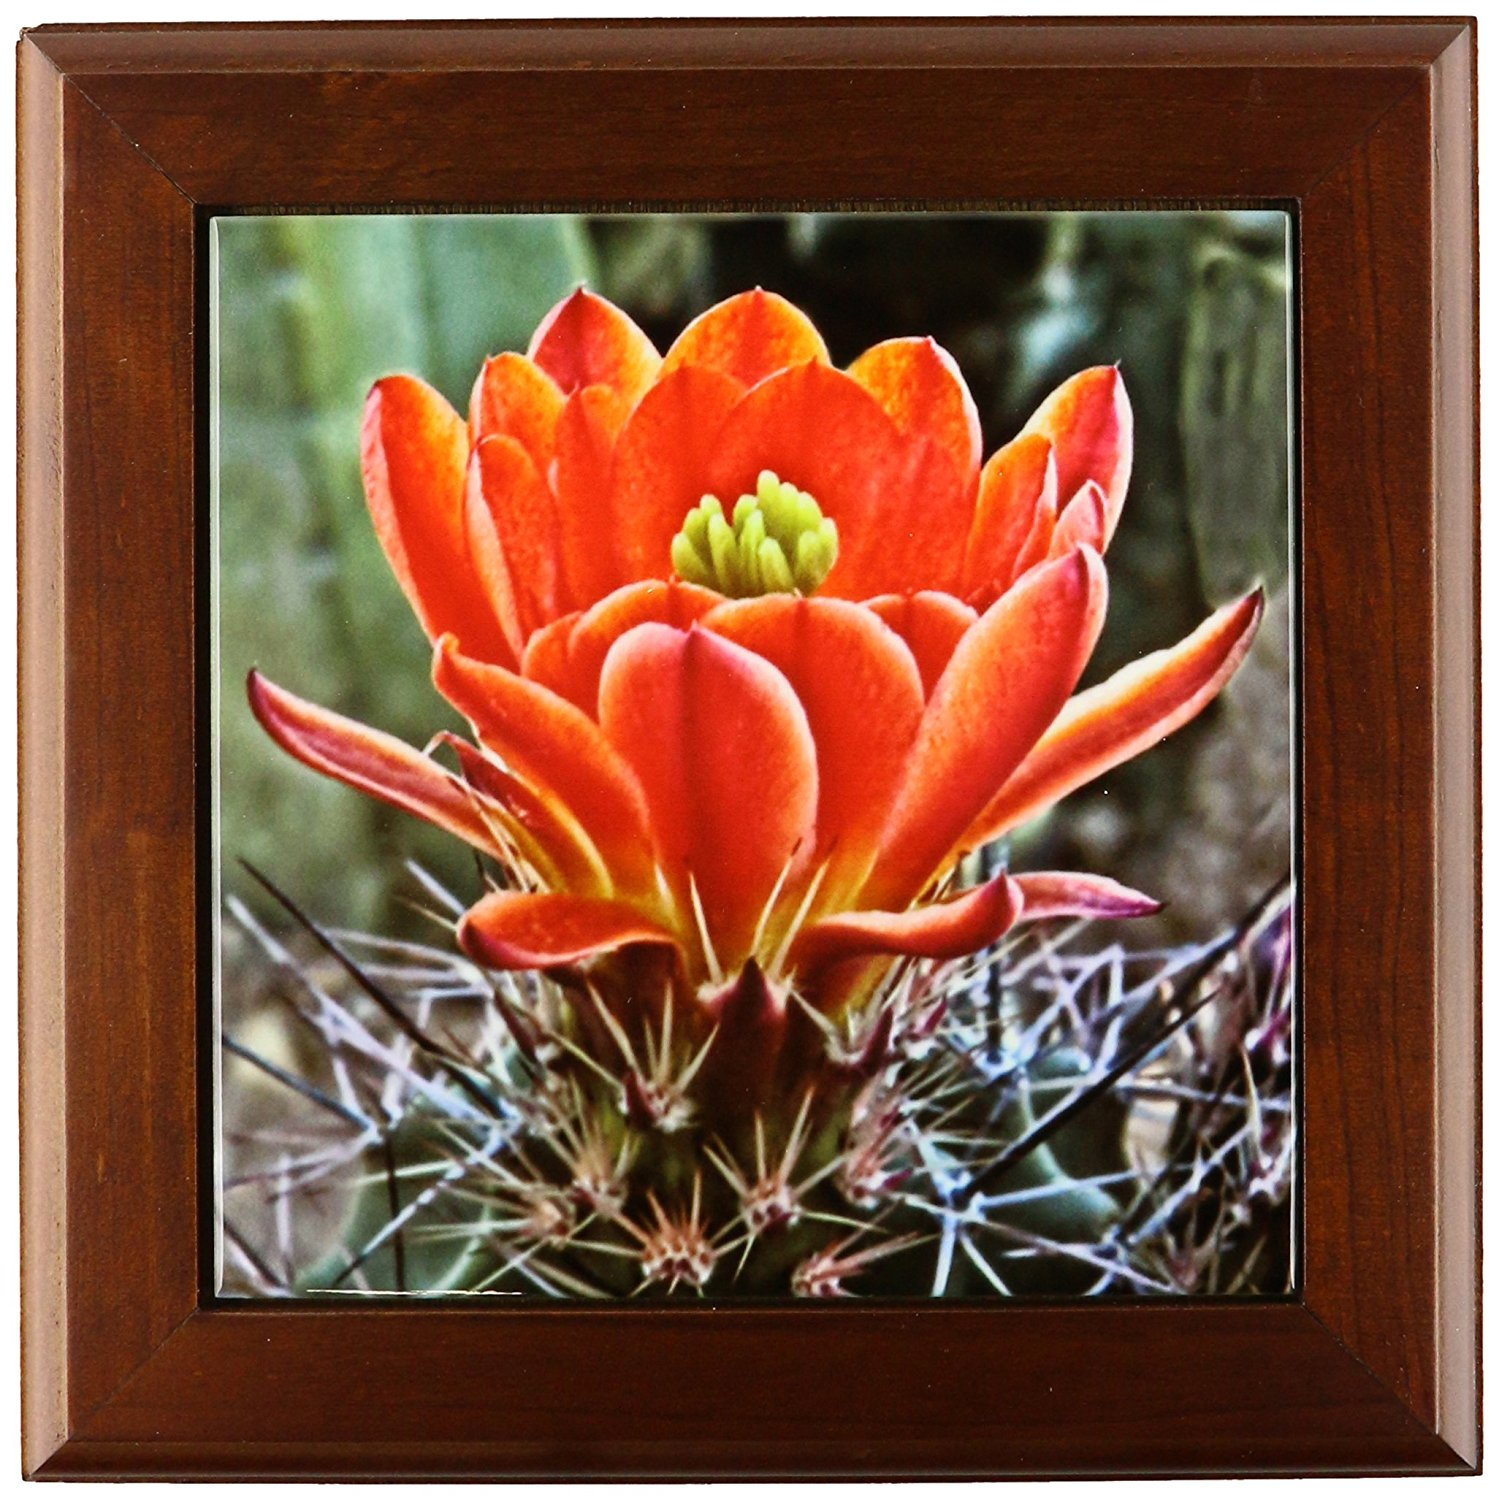 Cheap Cactus Red Flower, find Cactus Red Flower deals on line at ...